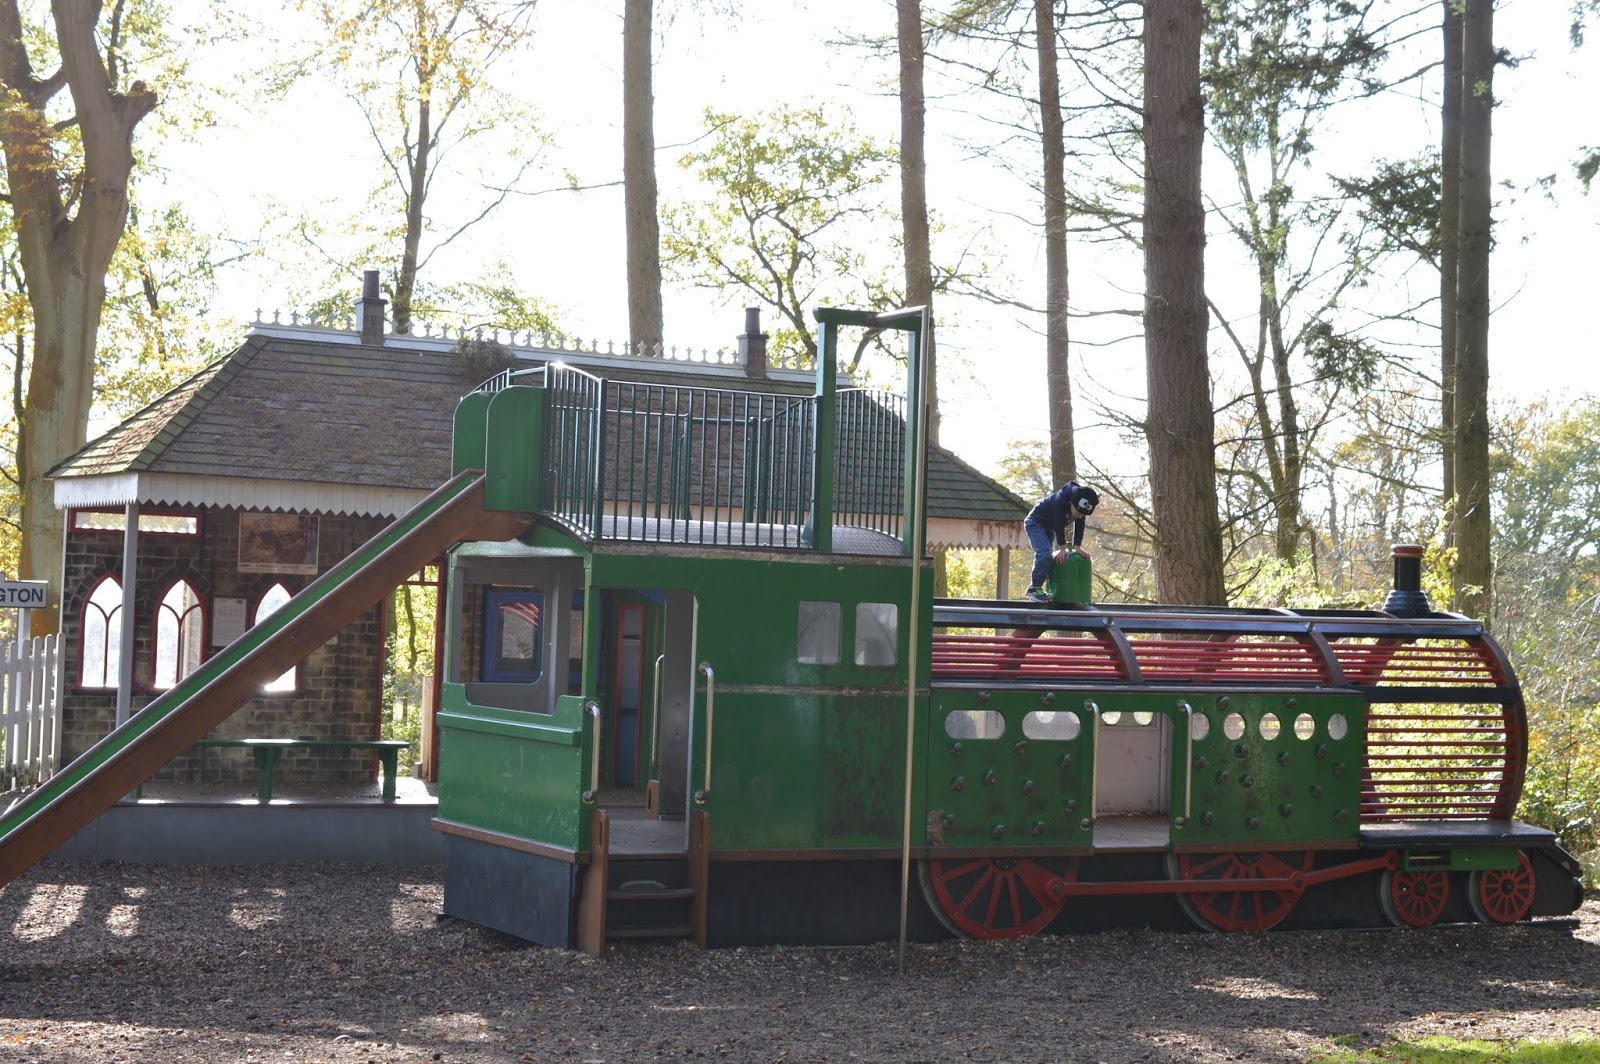 Visiting the Adventure Playground & Outdoor Play Areas at Wallington Hall  - train park